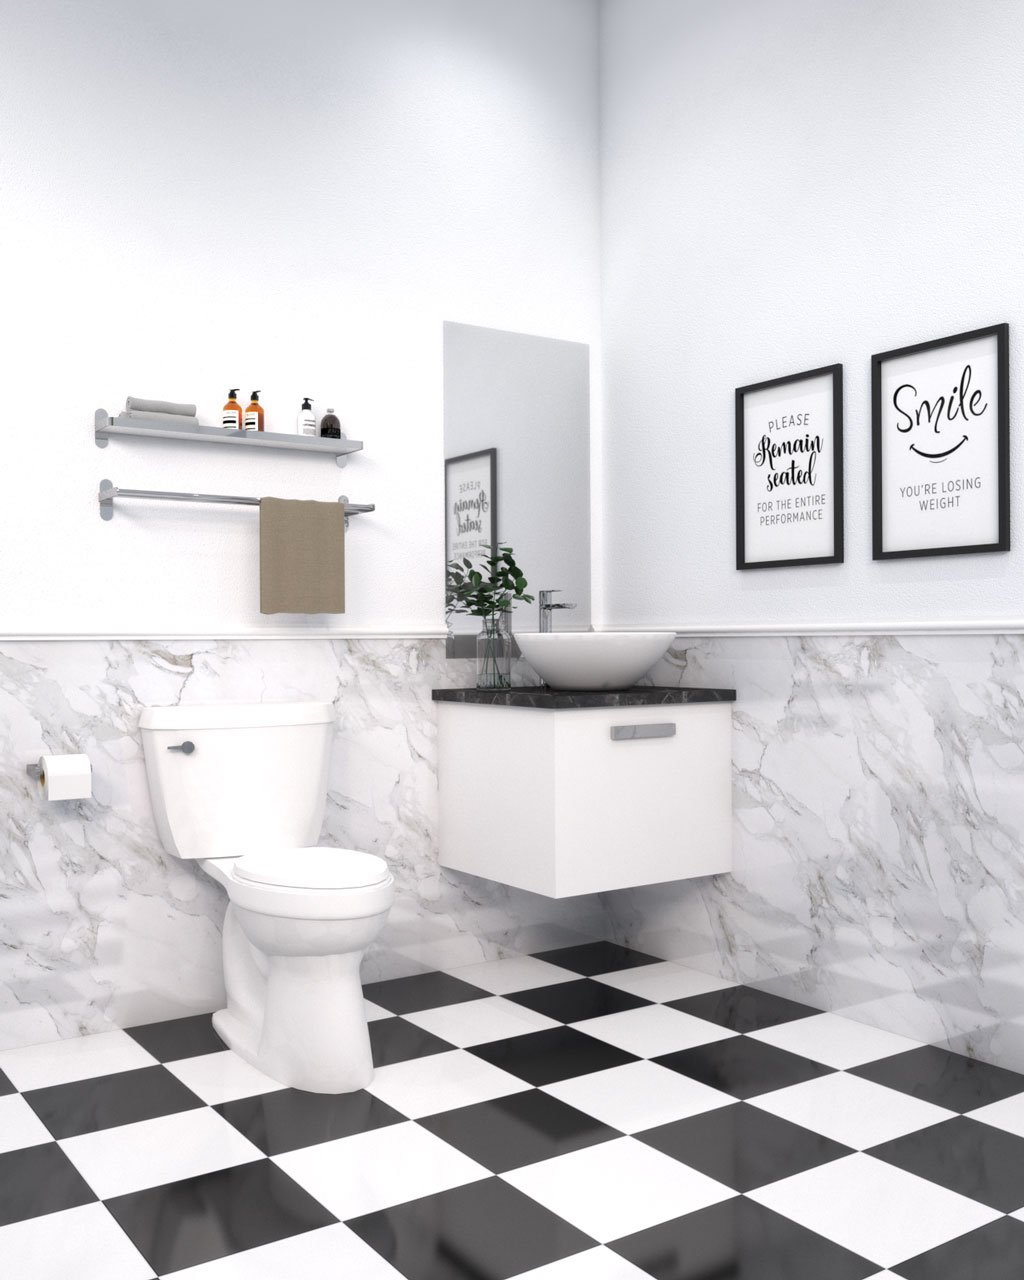 Black and white bathroom tile flooring with white walls